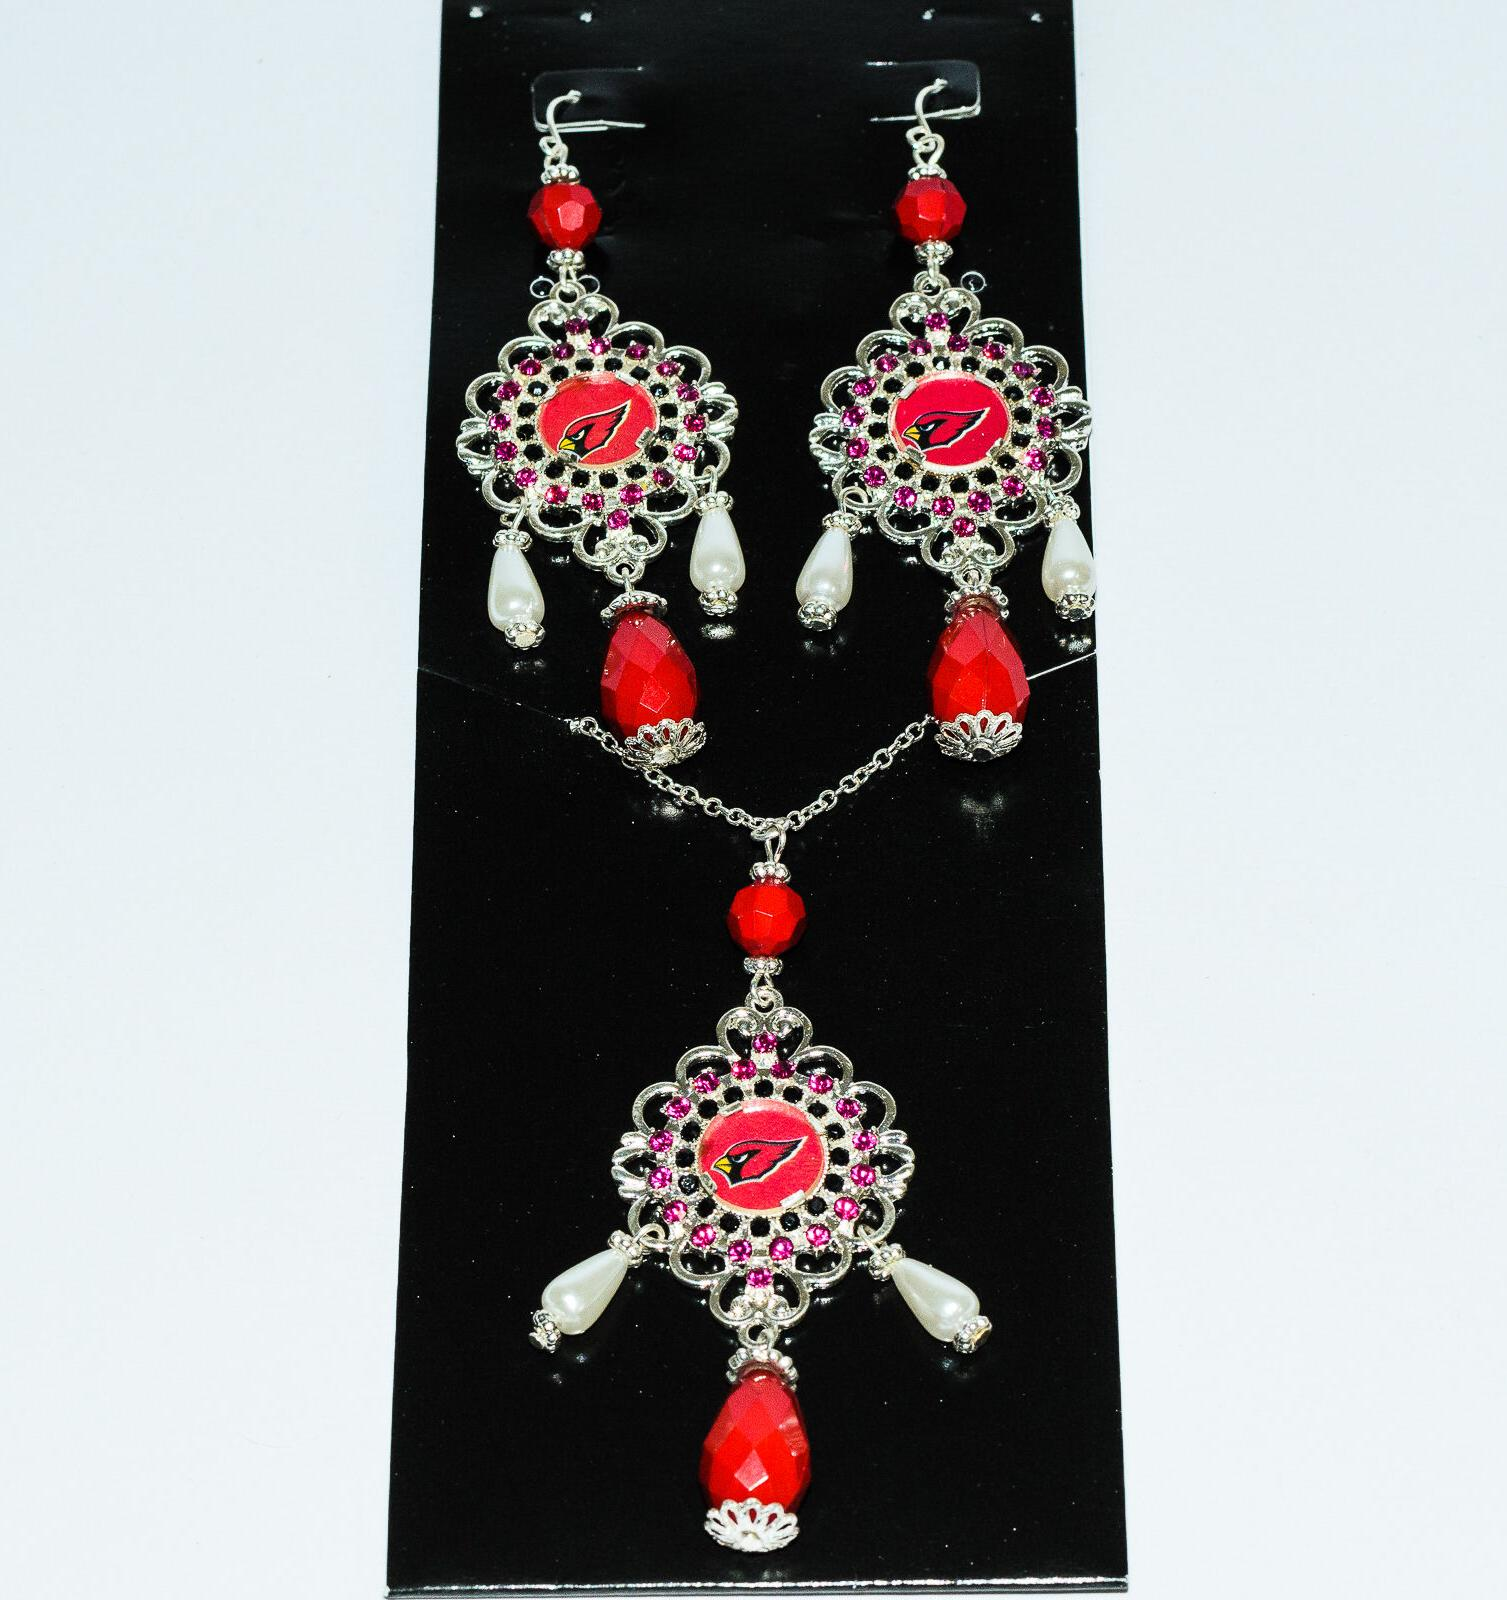 arizona cardinals baroque necklace and earrings set